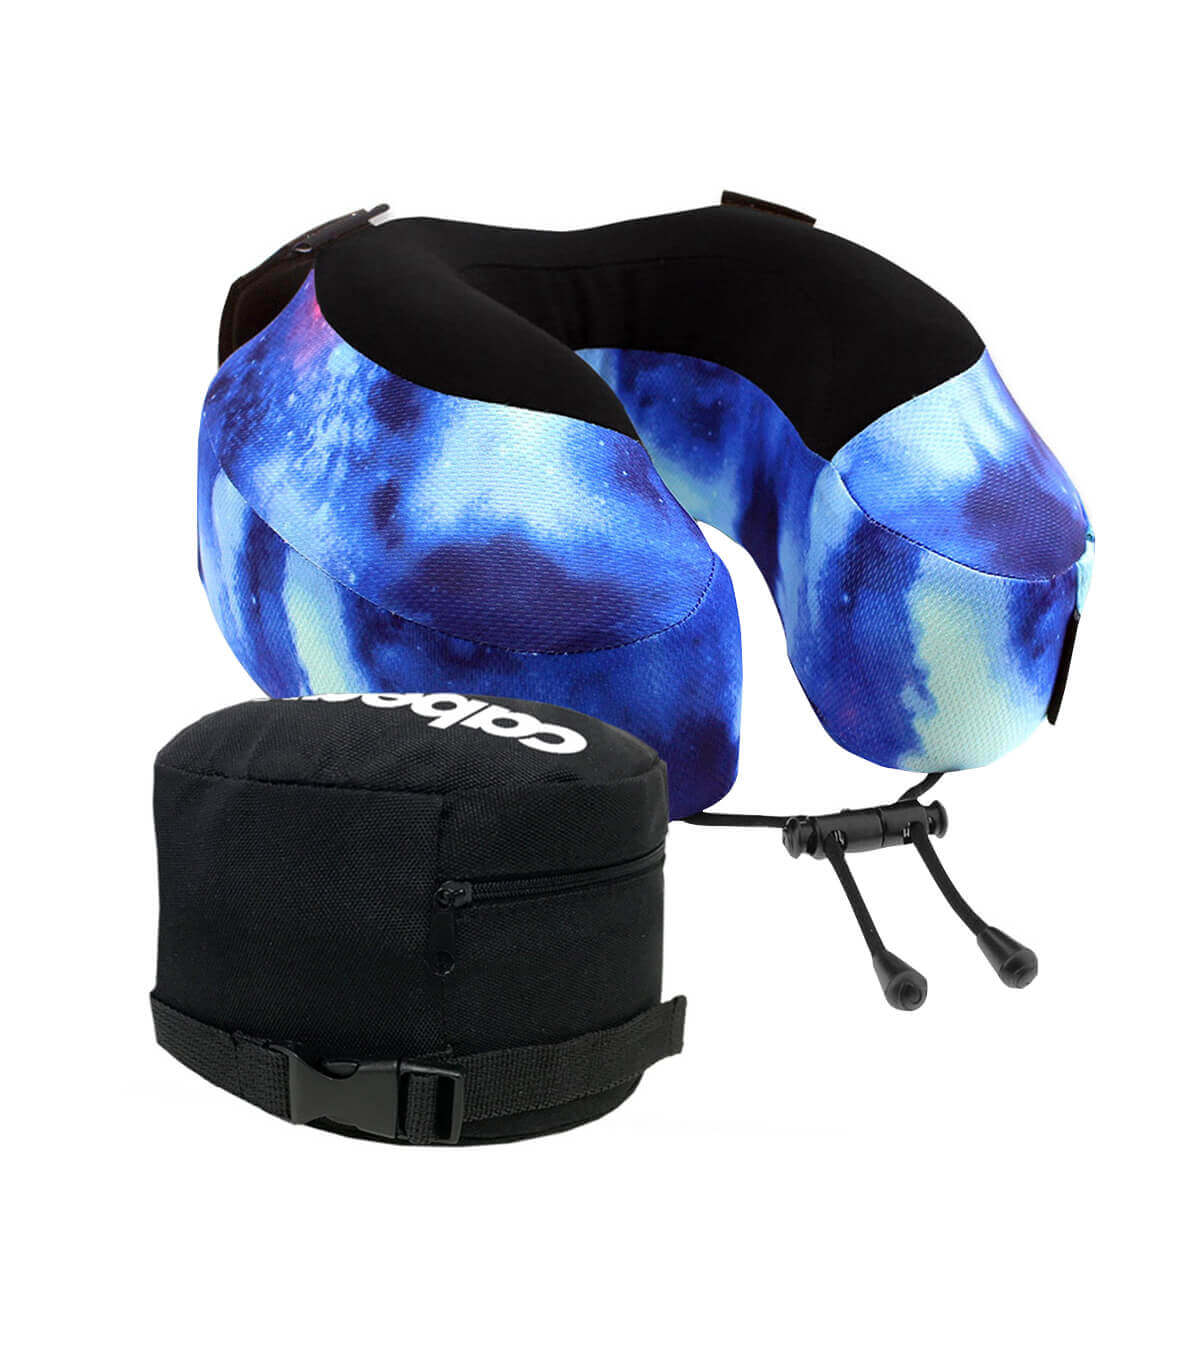 CABEAU EVO PILLOW S3 GALAXY